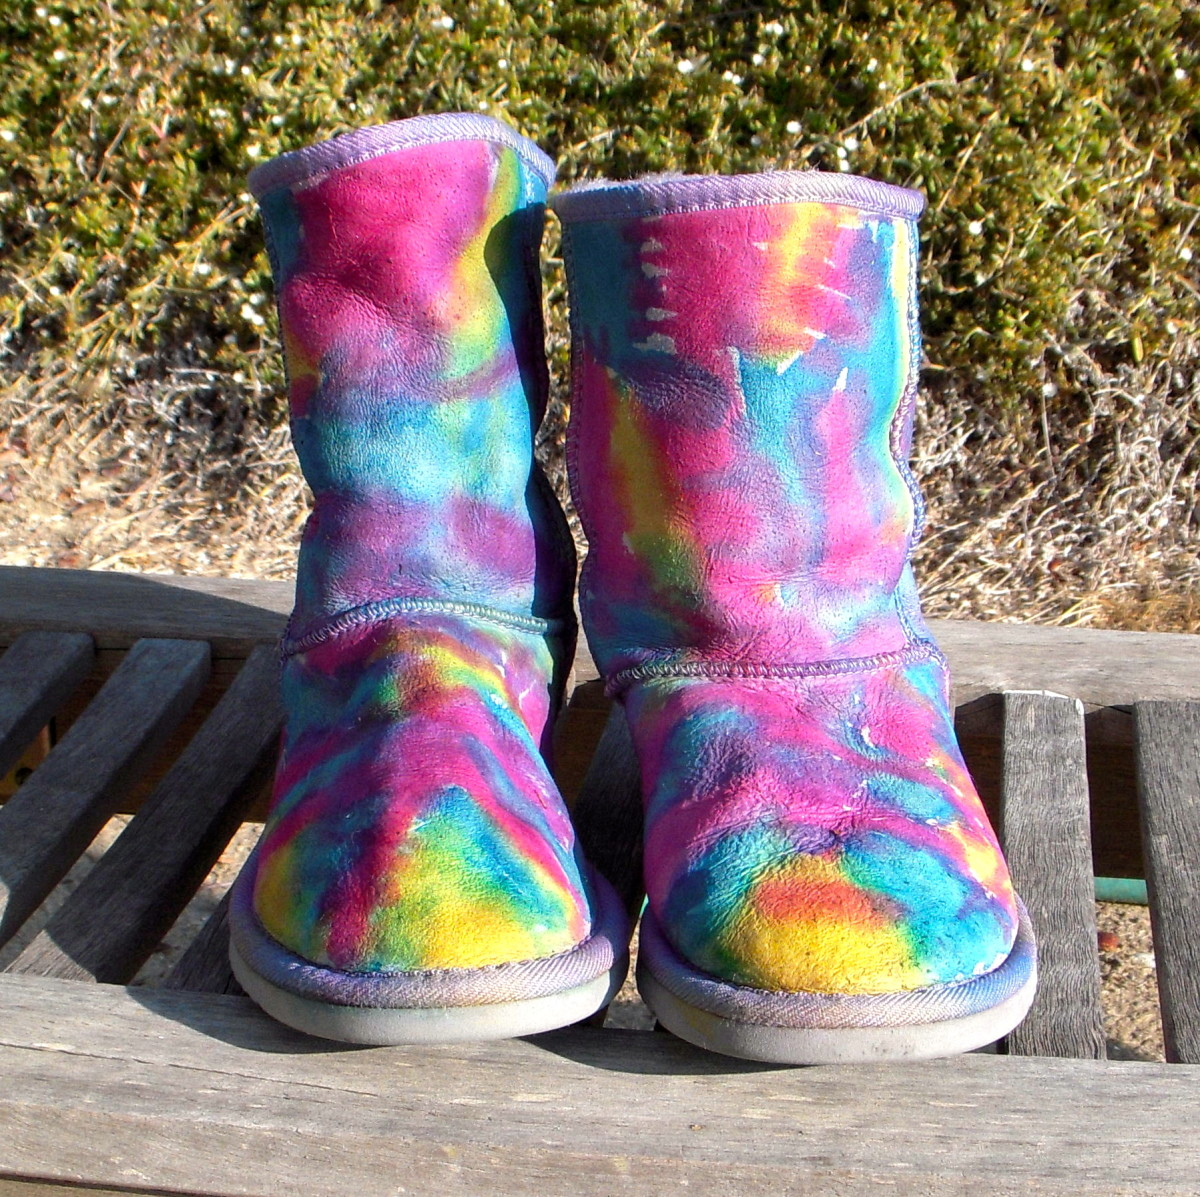 How to Tie-Dye Ugg Boots